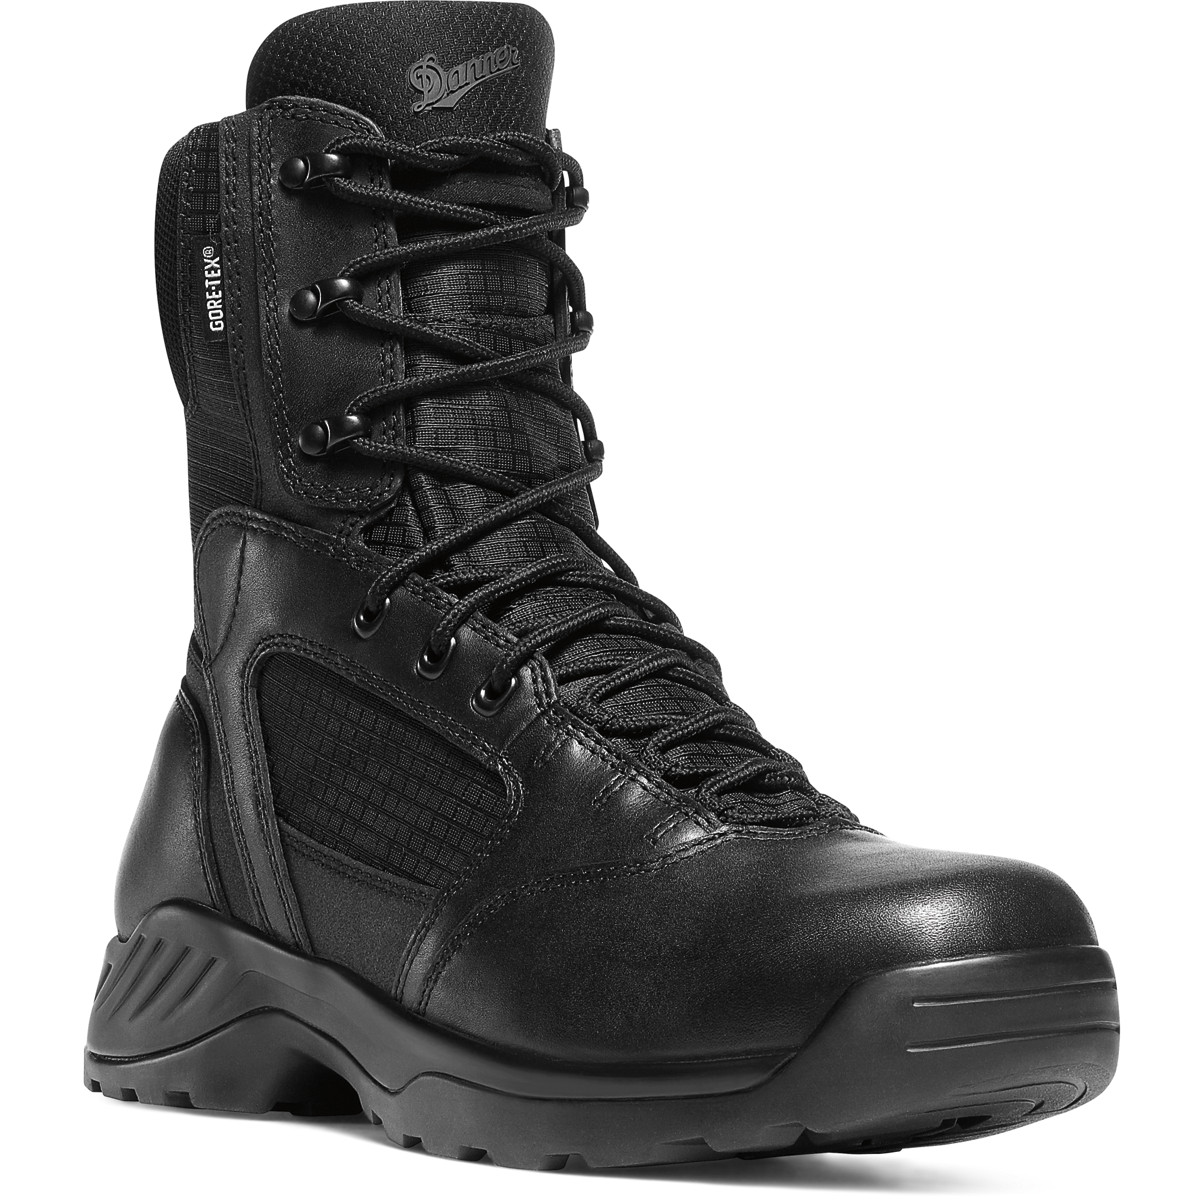 Danner 28012 Kinetic 8-inch GORE-TEX Uniform Boot | Product ...